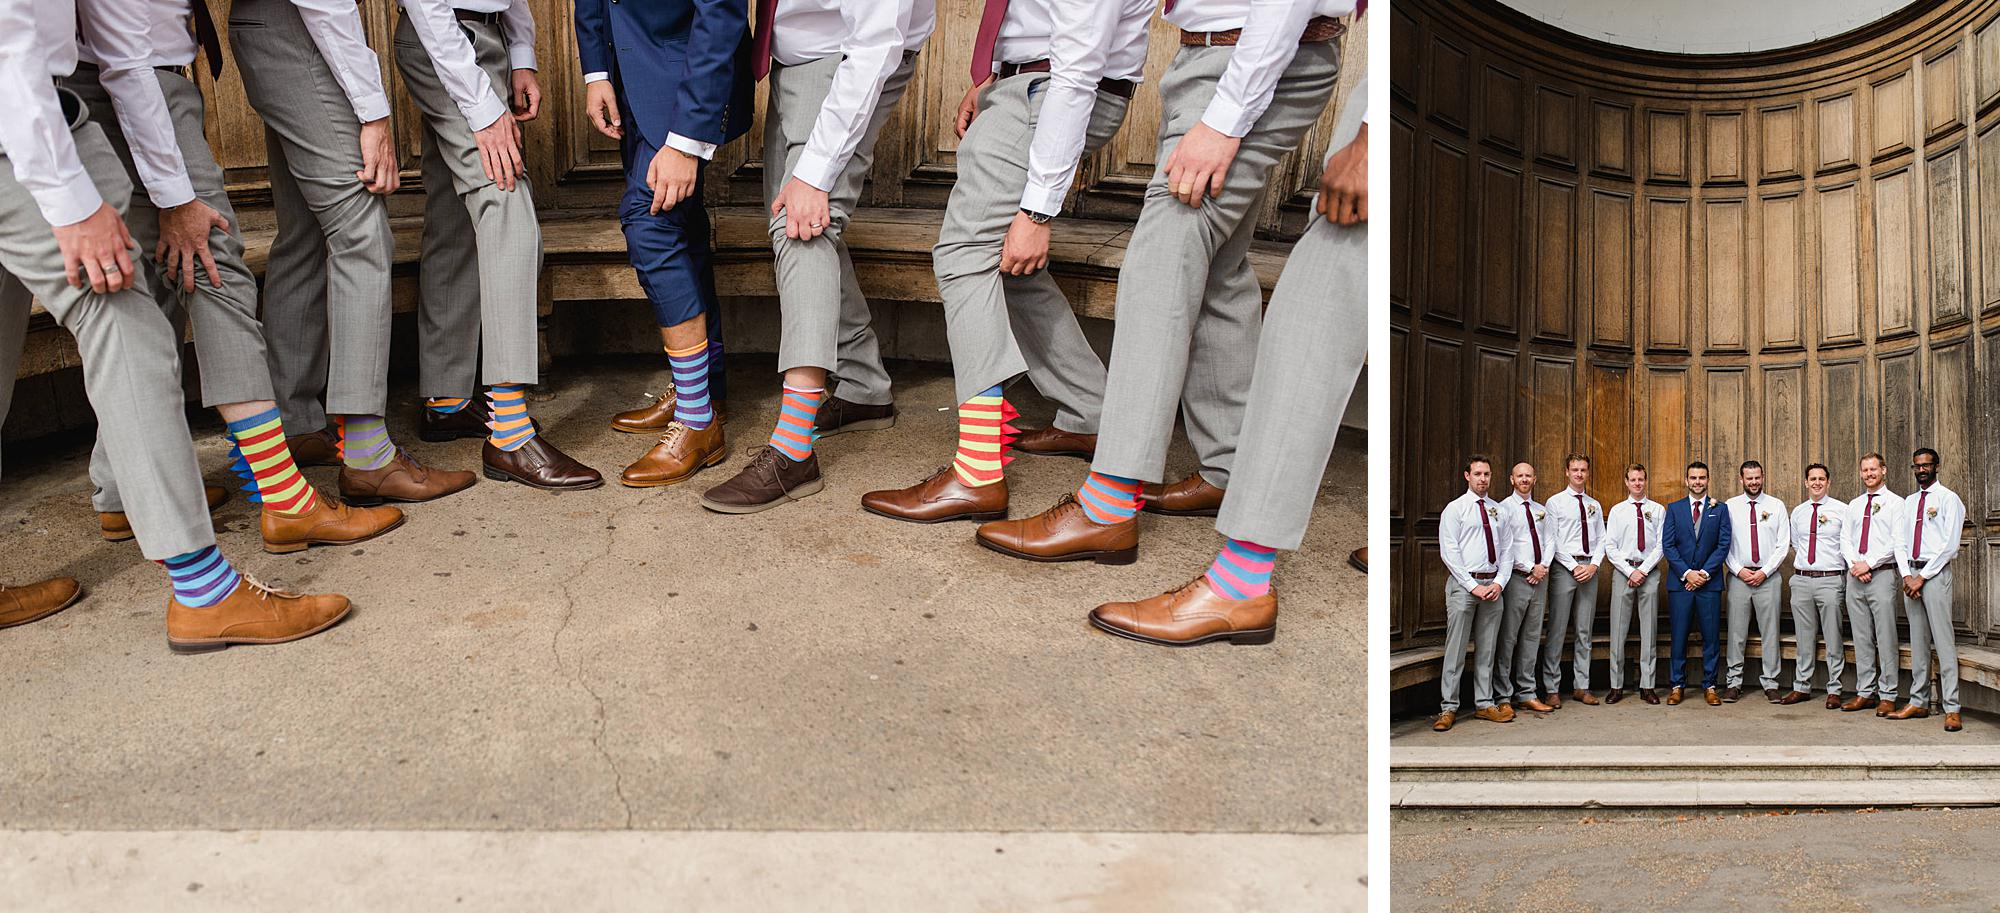 The Union Paddington Wedding groomsmen show off stripy socks